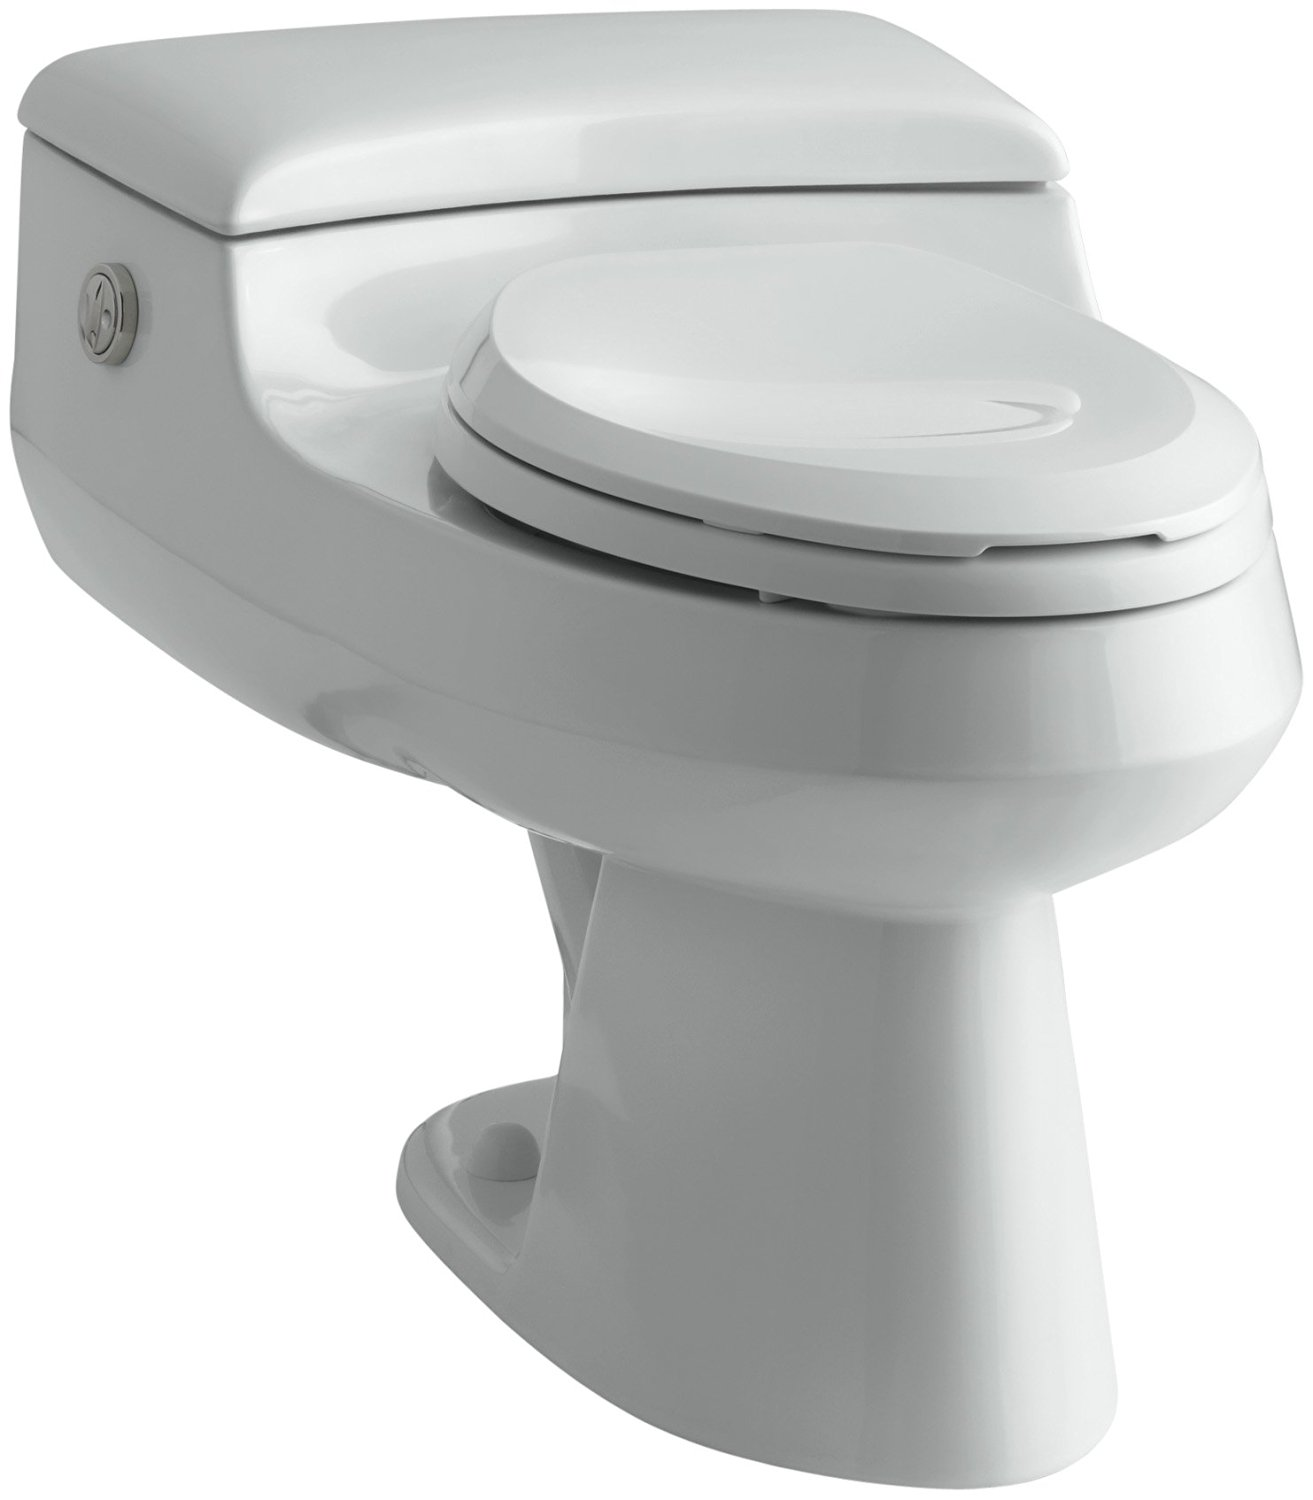 Kohler San Raphael Toilet Review